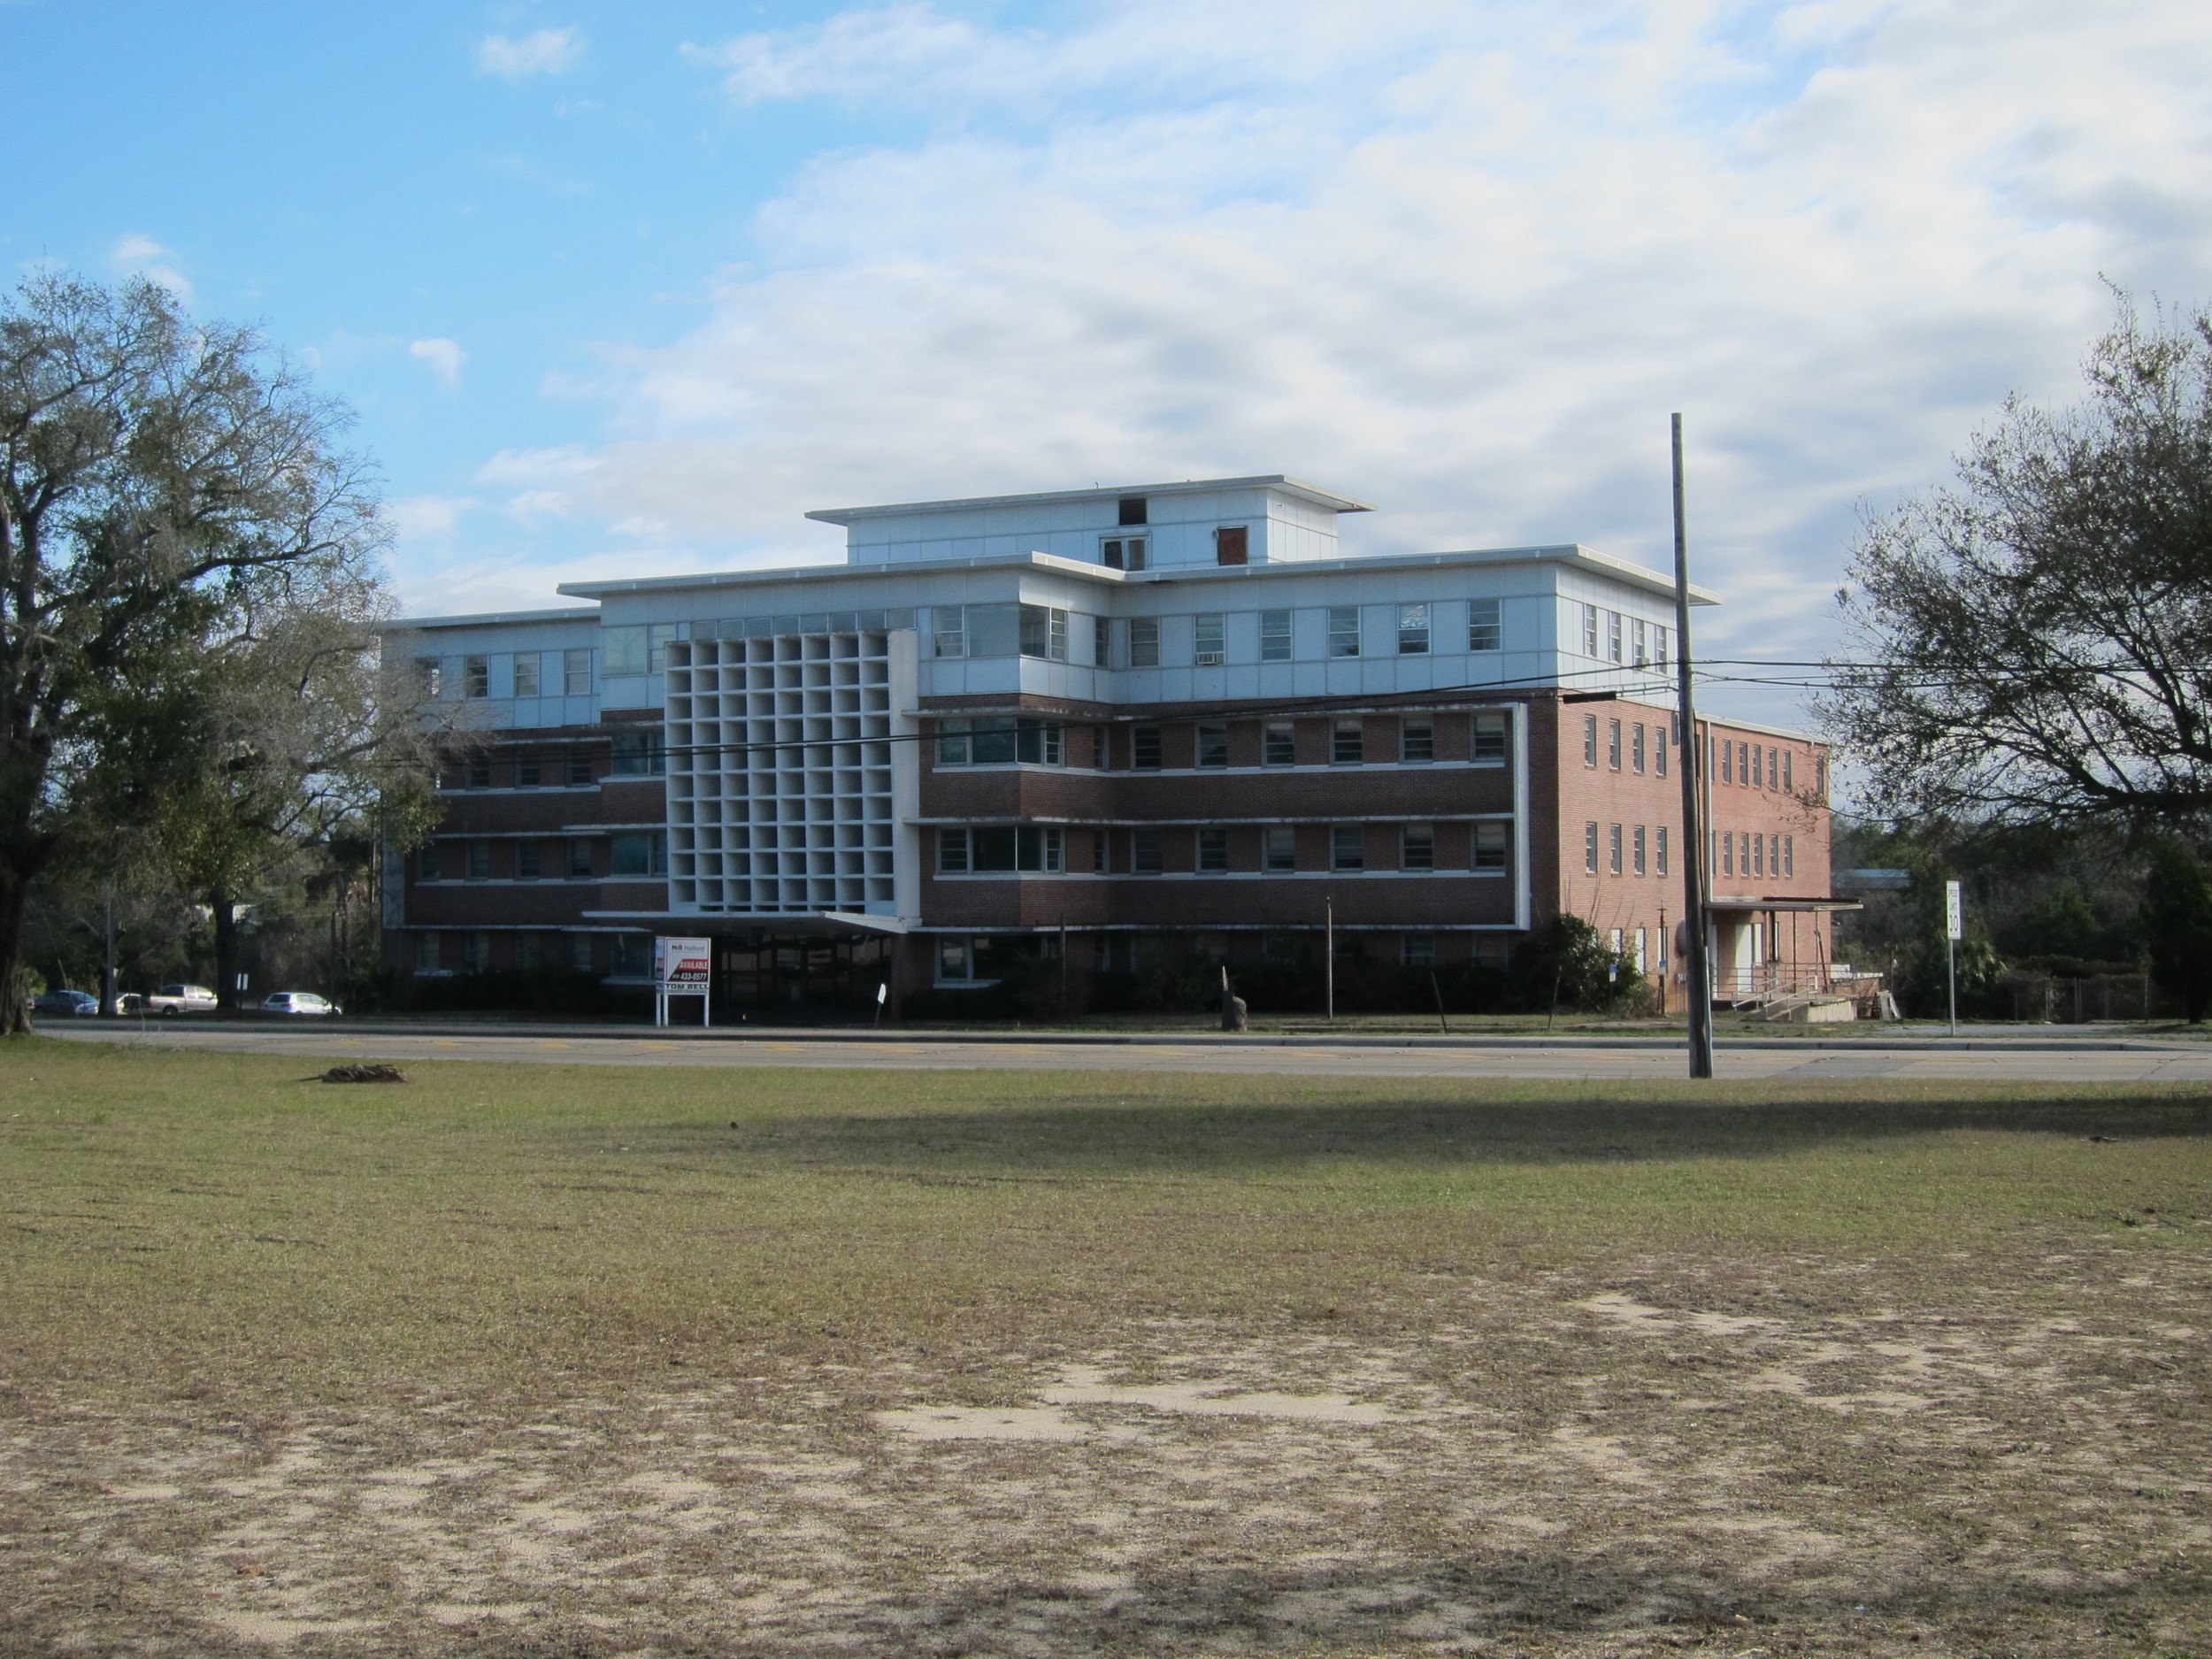 The former site of the Medical Center Clinic has been vacant since the roof caved in following Hurricane Ivan in 2004.